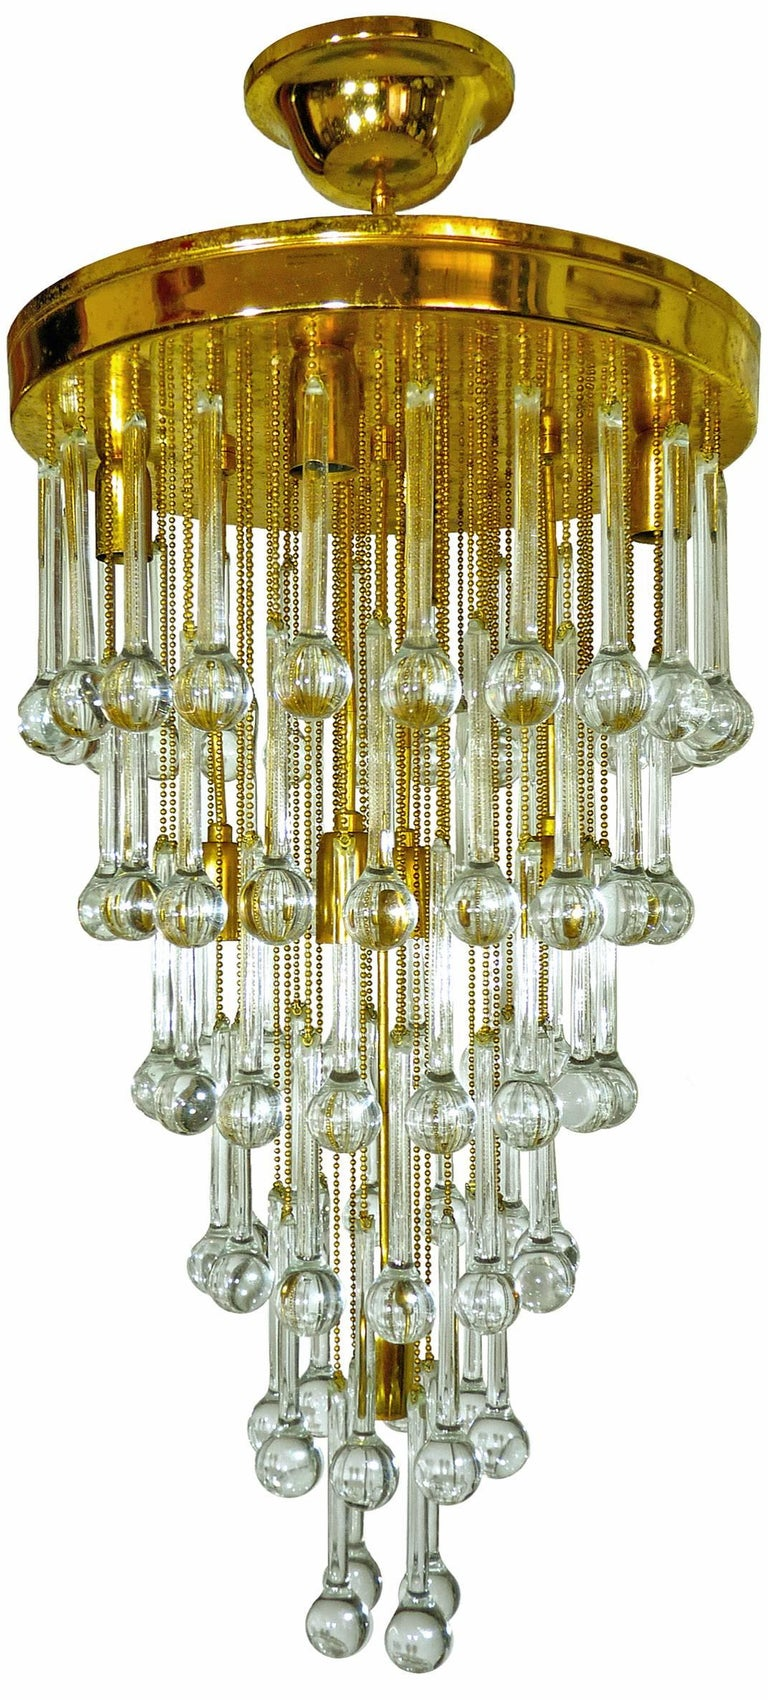 Hollywood Regency Massive Murano Crystal Glass Drop Waterfall & Gilt Brass Venini Style Chandelier For Sale